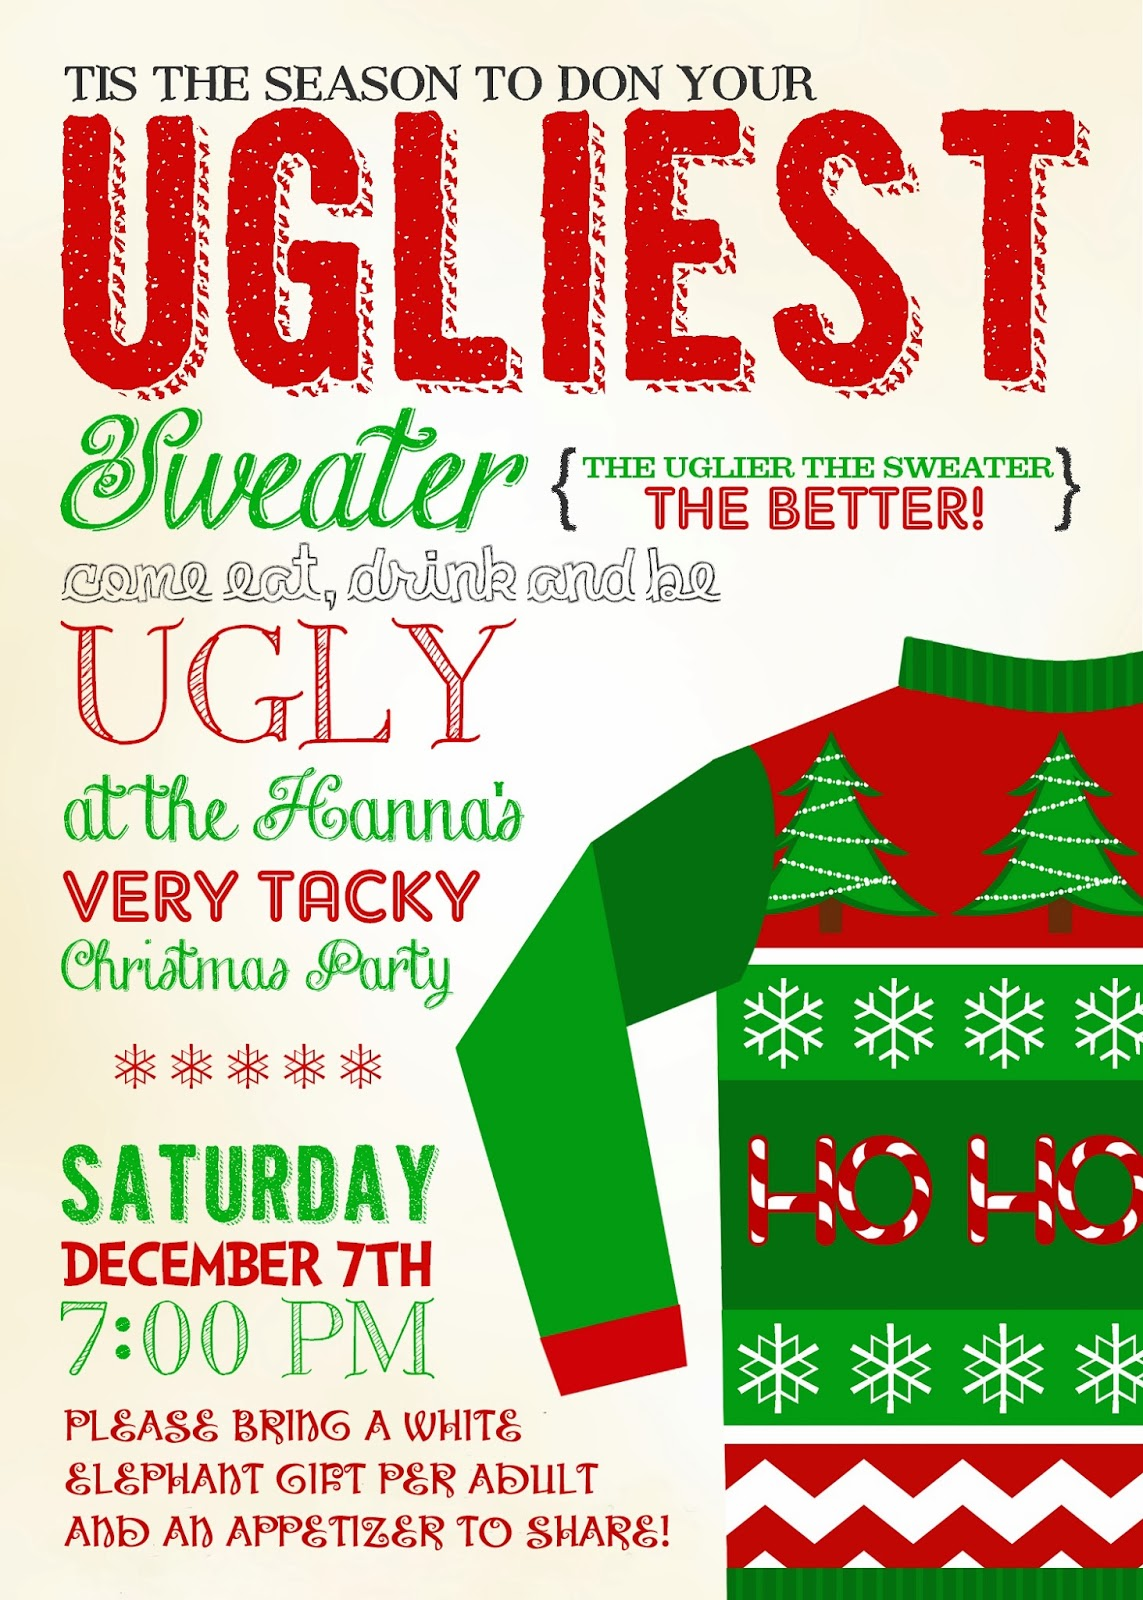 blog page 71 of 156 mickey mouse invitations templates ugly sweater christmas party invitations wording